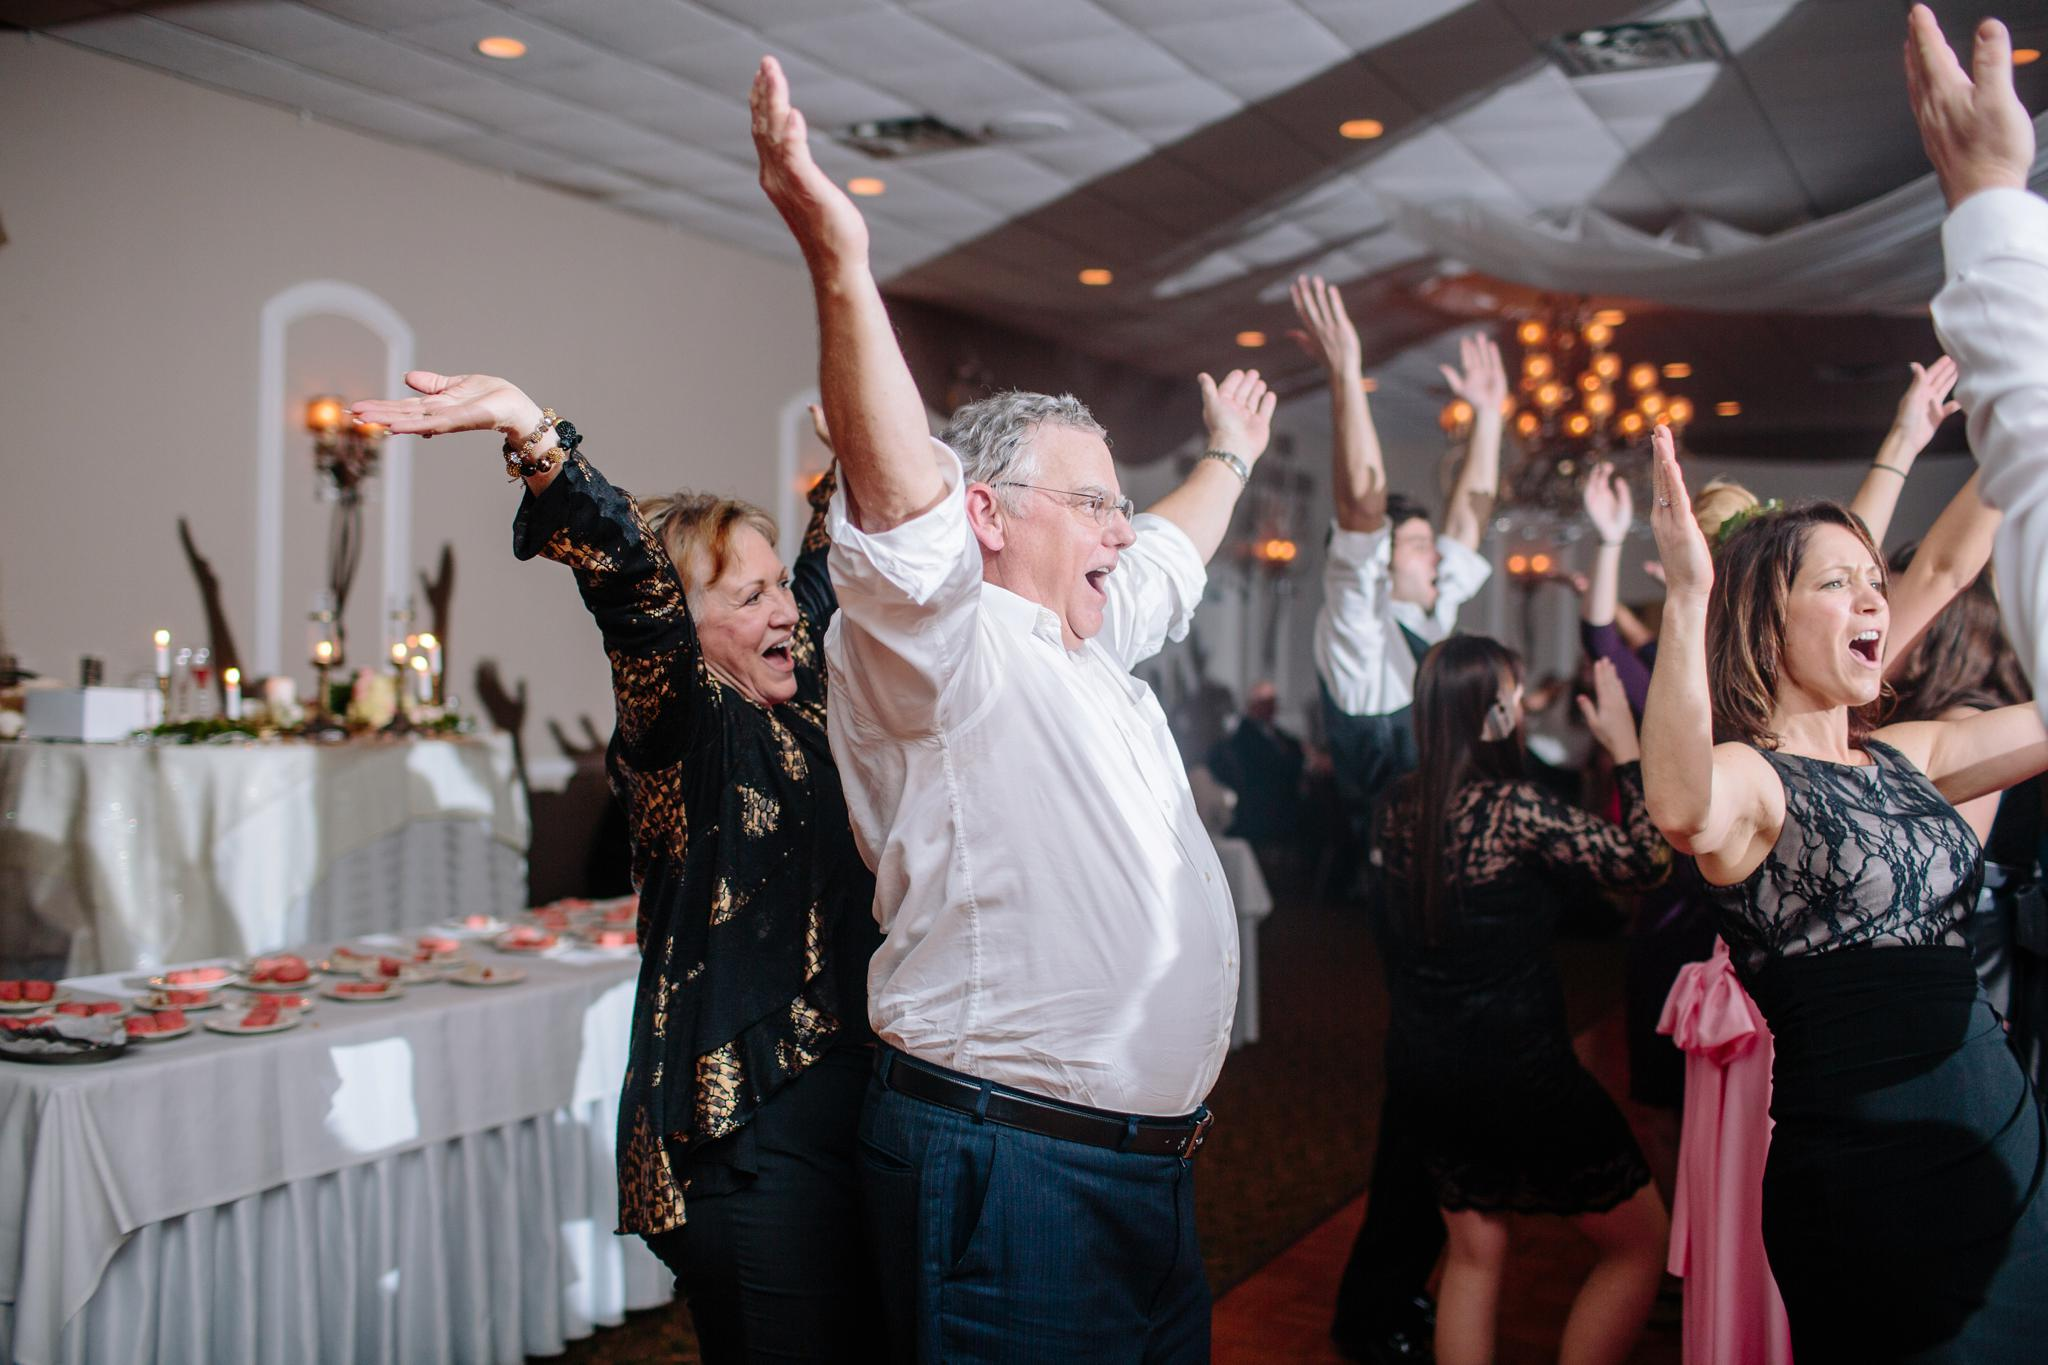 tunkhannock_pa_wedding_photographer_4011.jpg